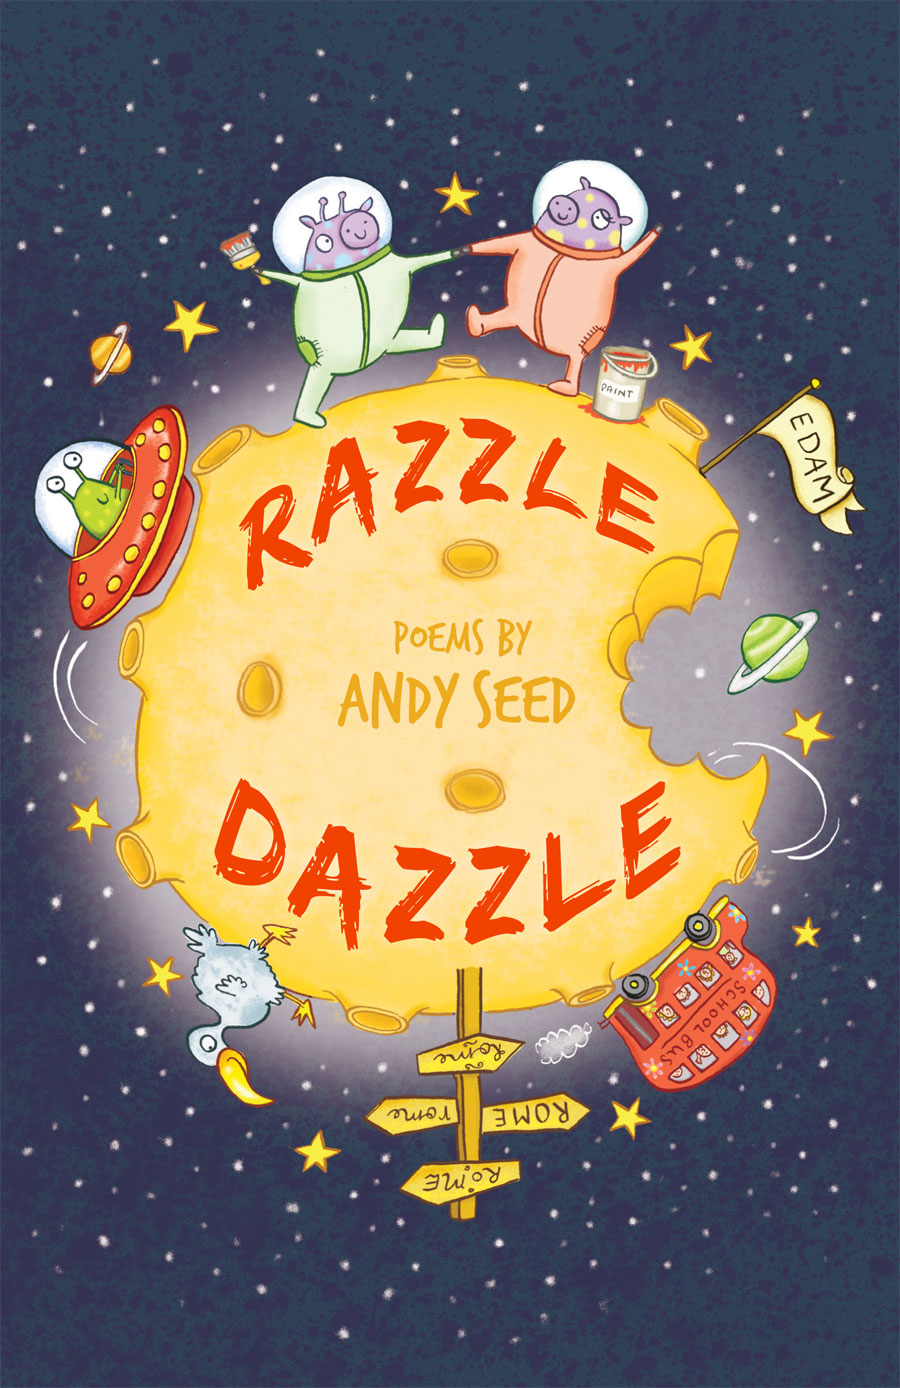 Cover for Razzle Dazzle, a book of poems by Andy Seed